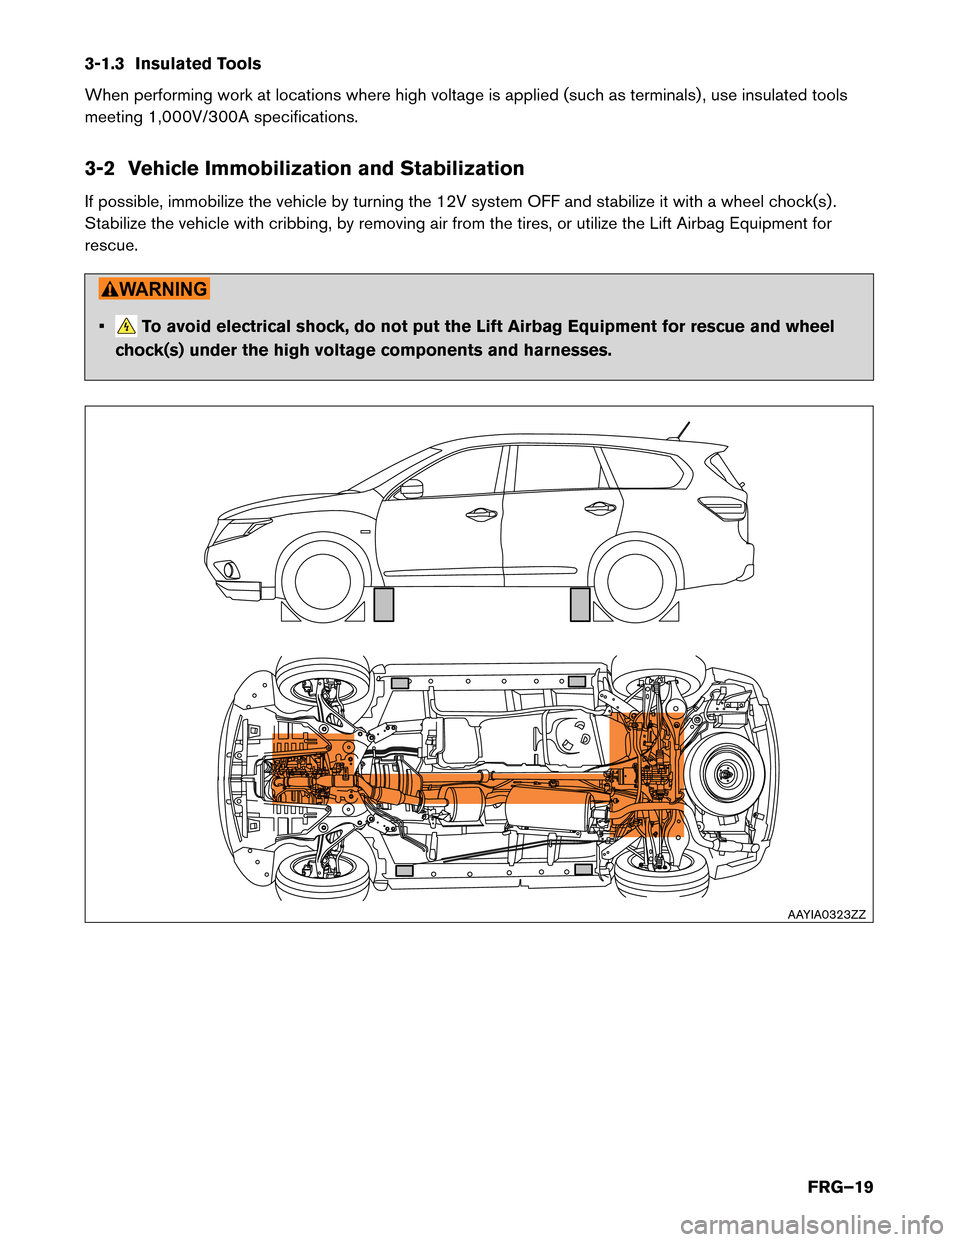 NISSAN PATHFINDER HYBRID 2014 R52 / 4.G First Responders Guide, Page 19